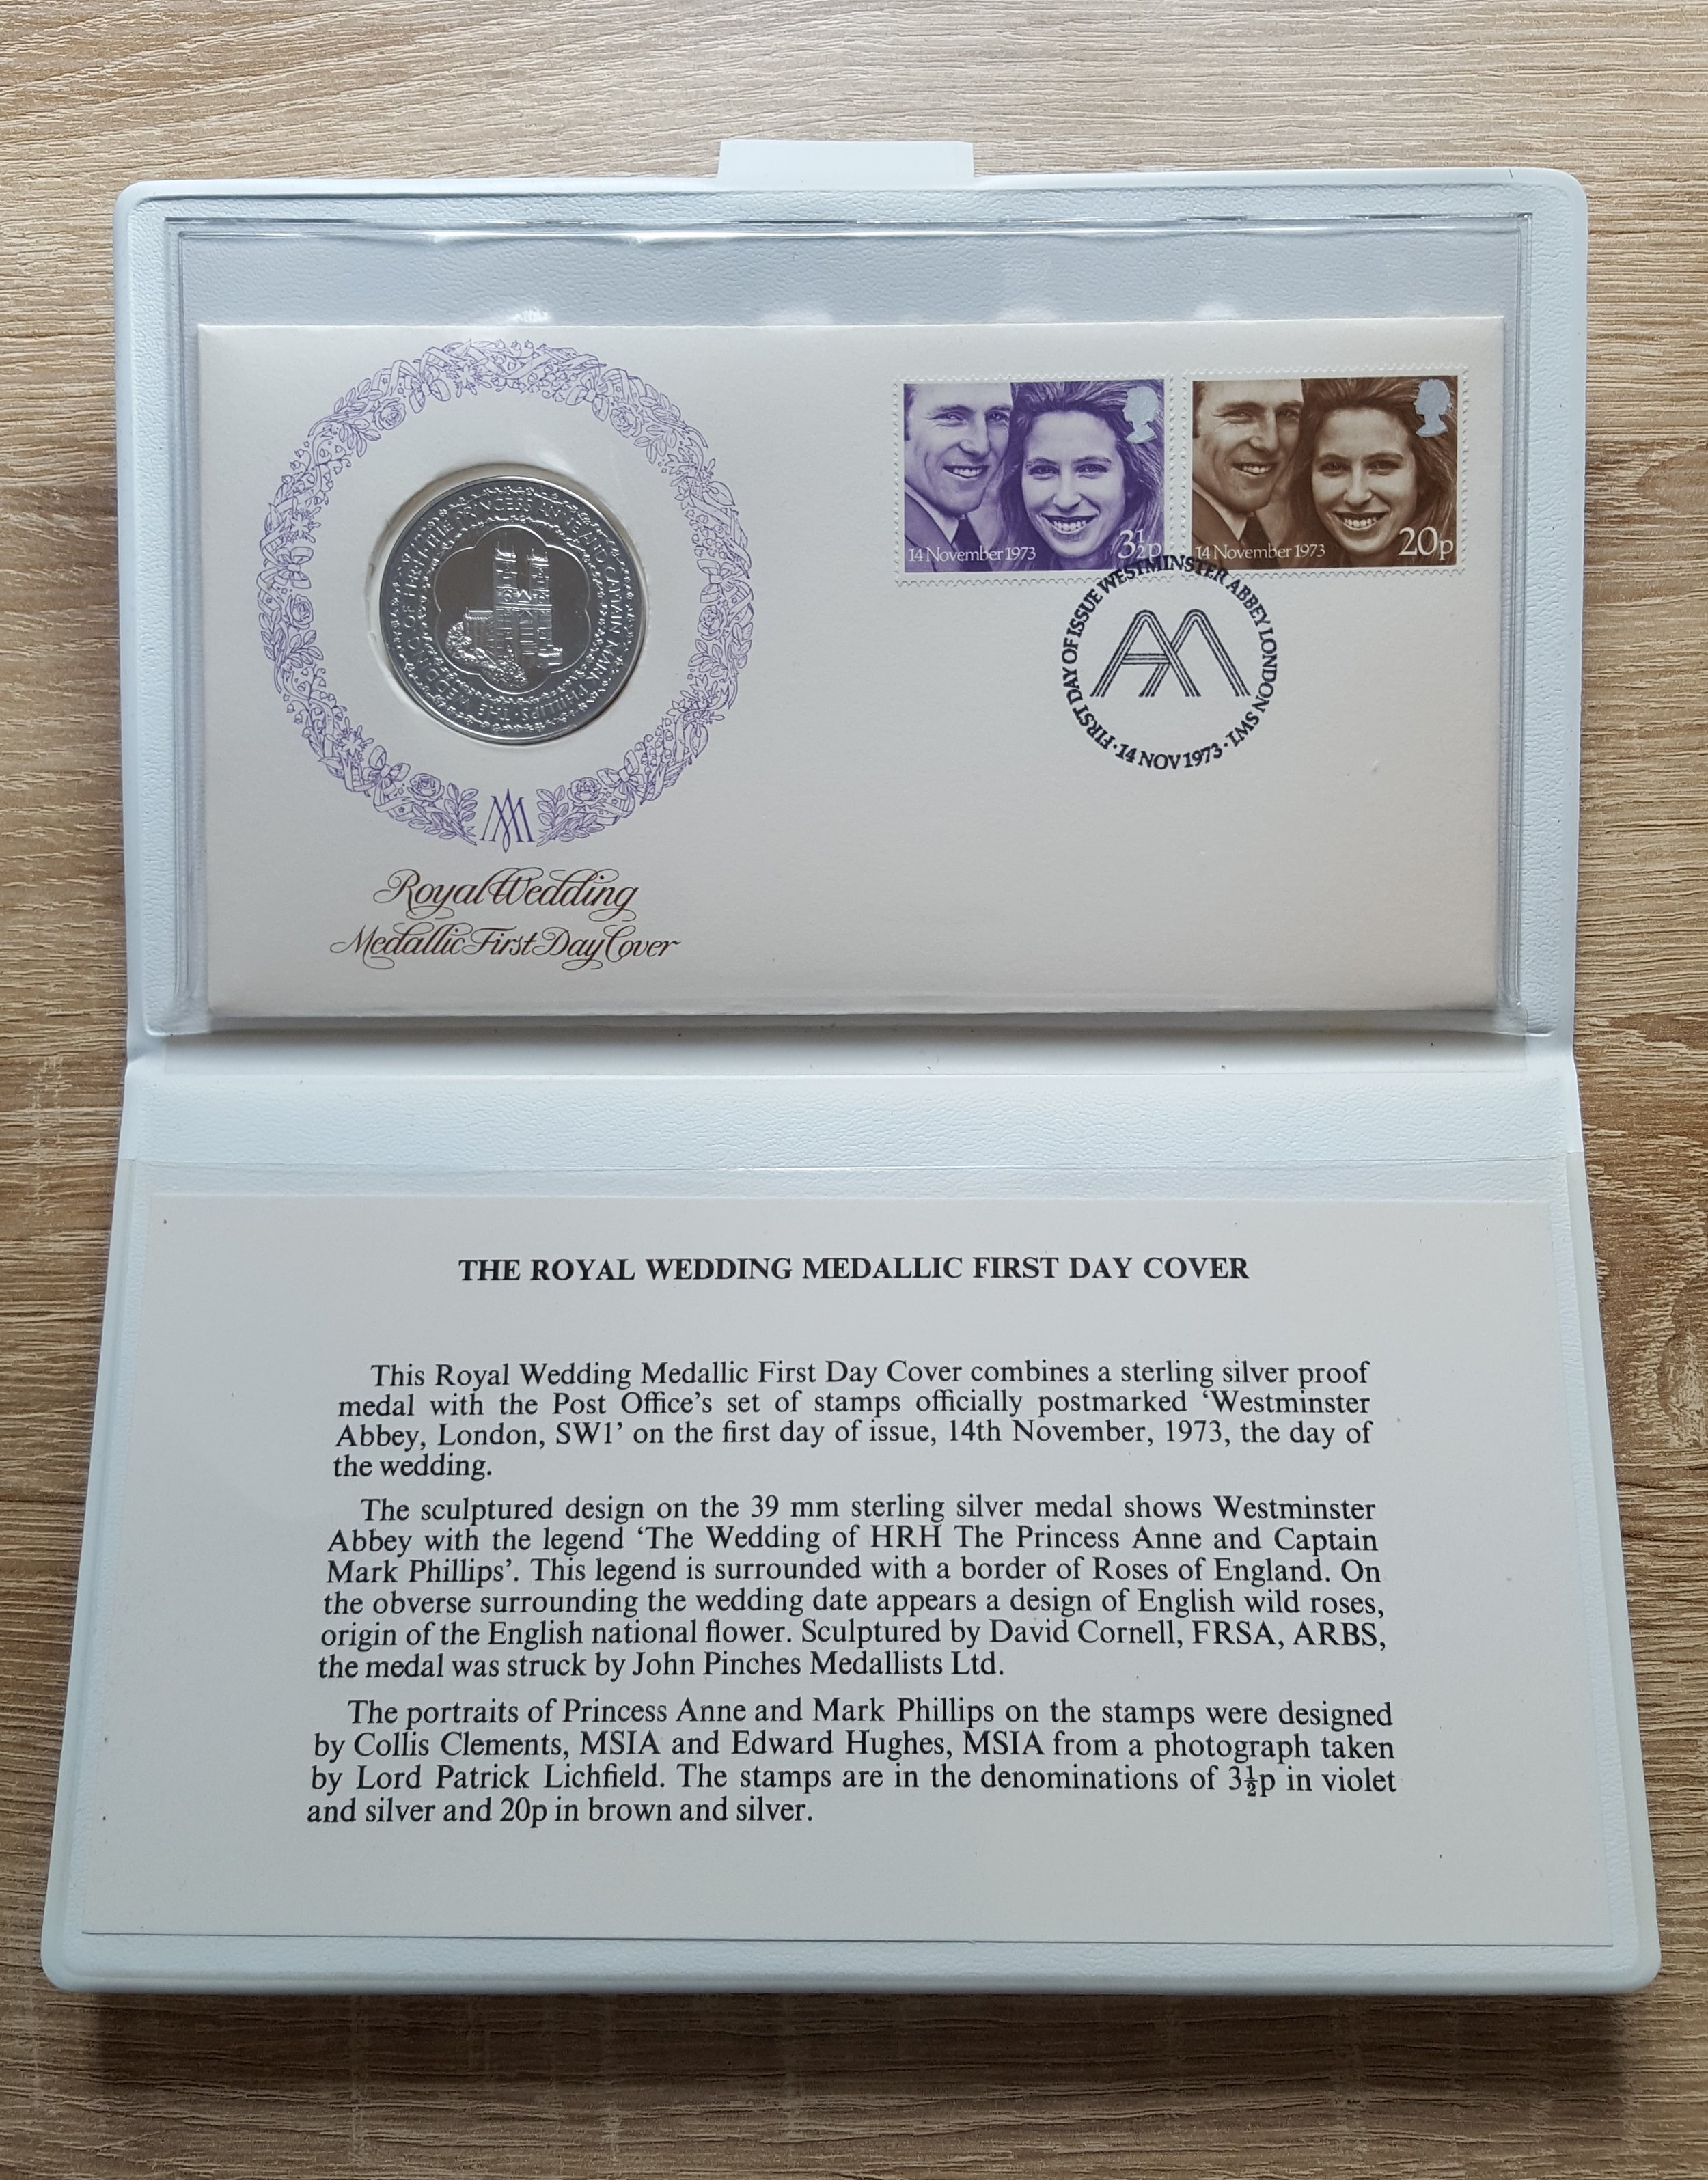 Royal Wedding 1973 Medallic (Sterling Silver Proof) First Day Cover.